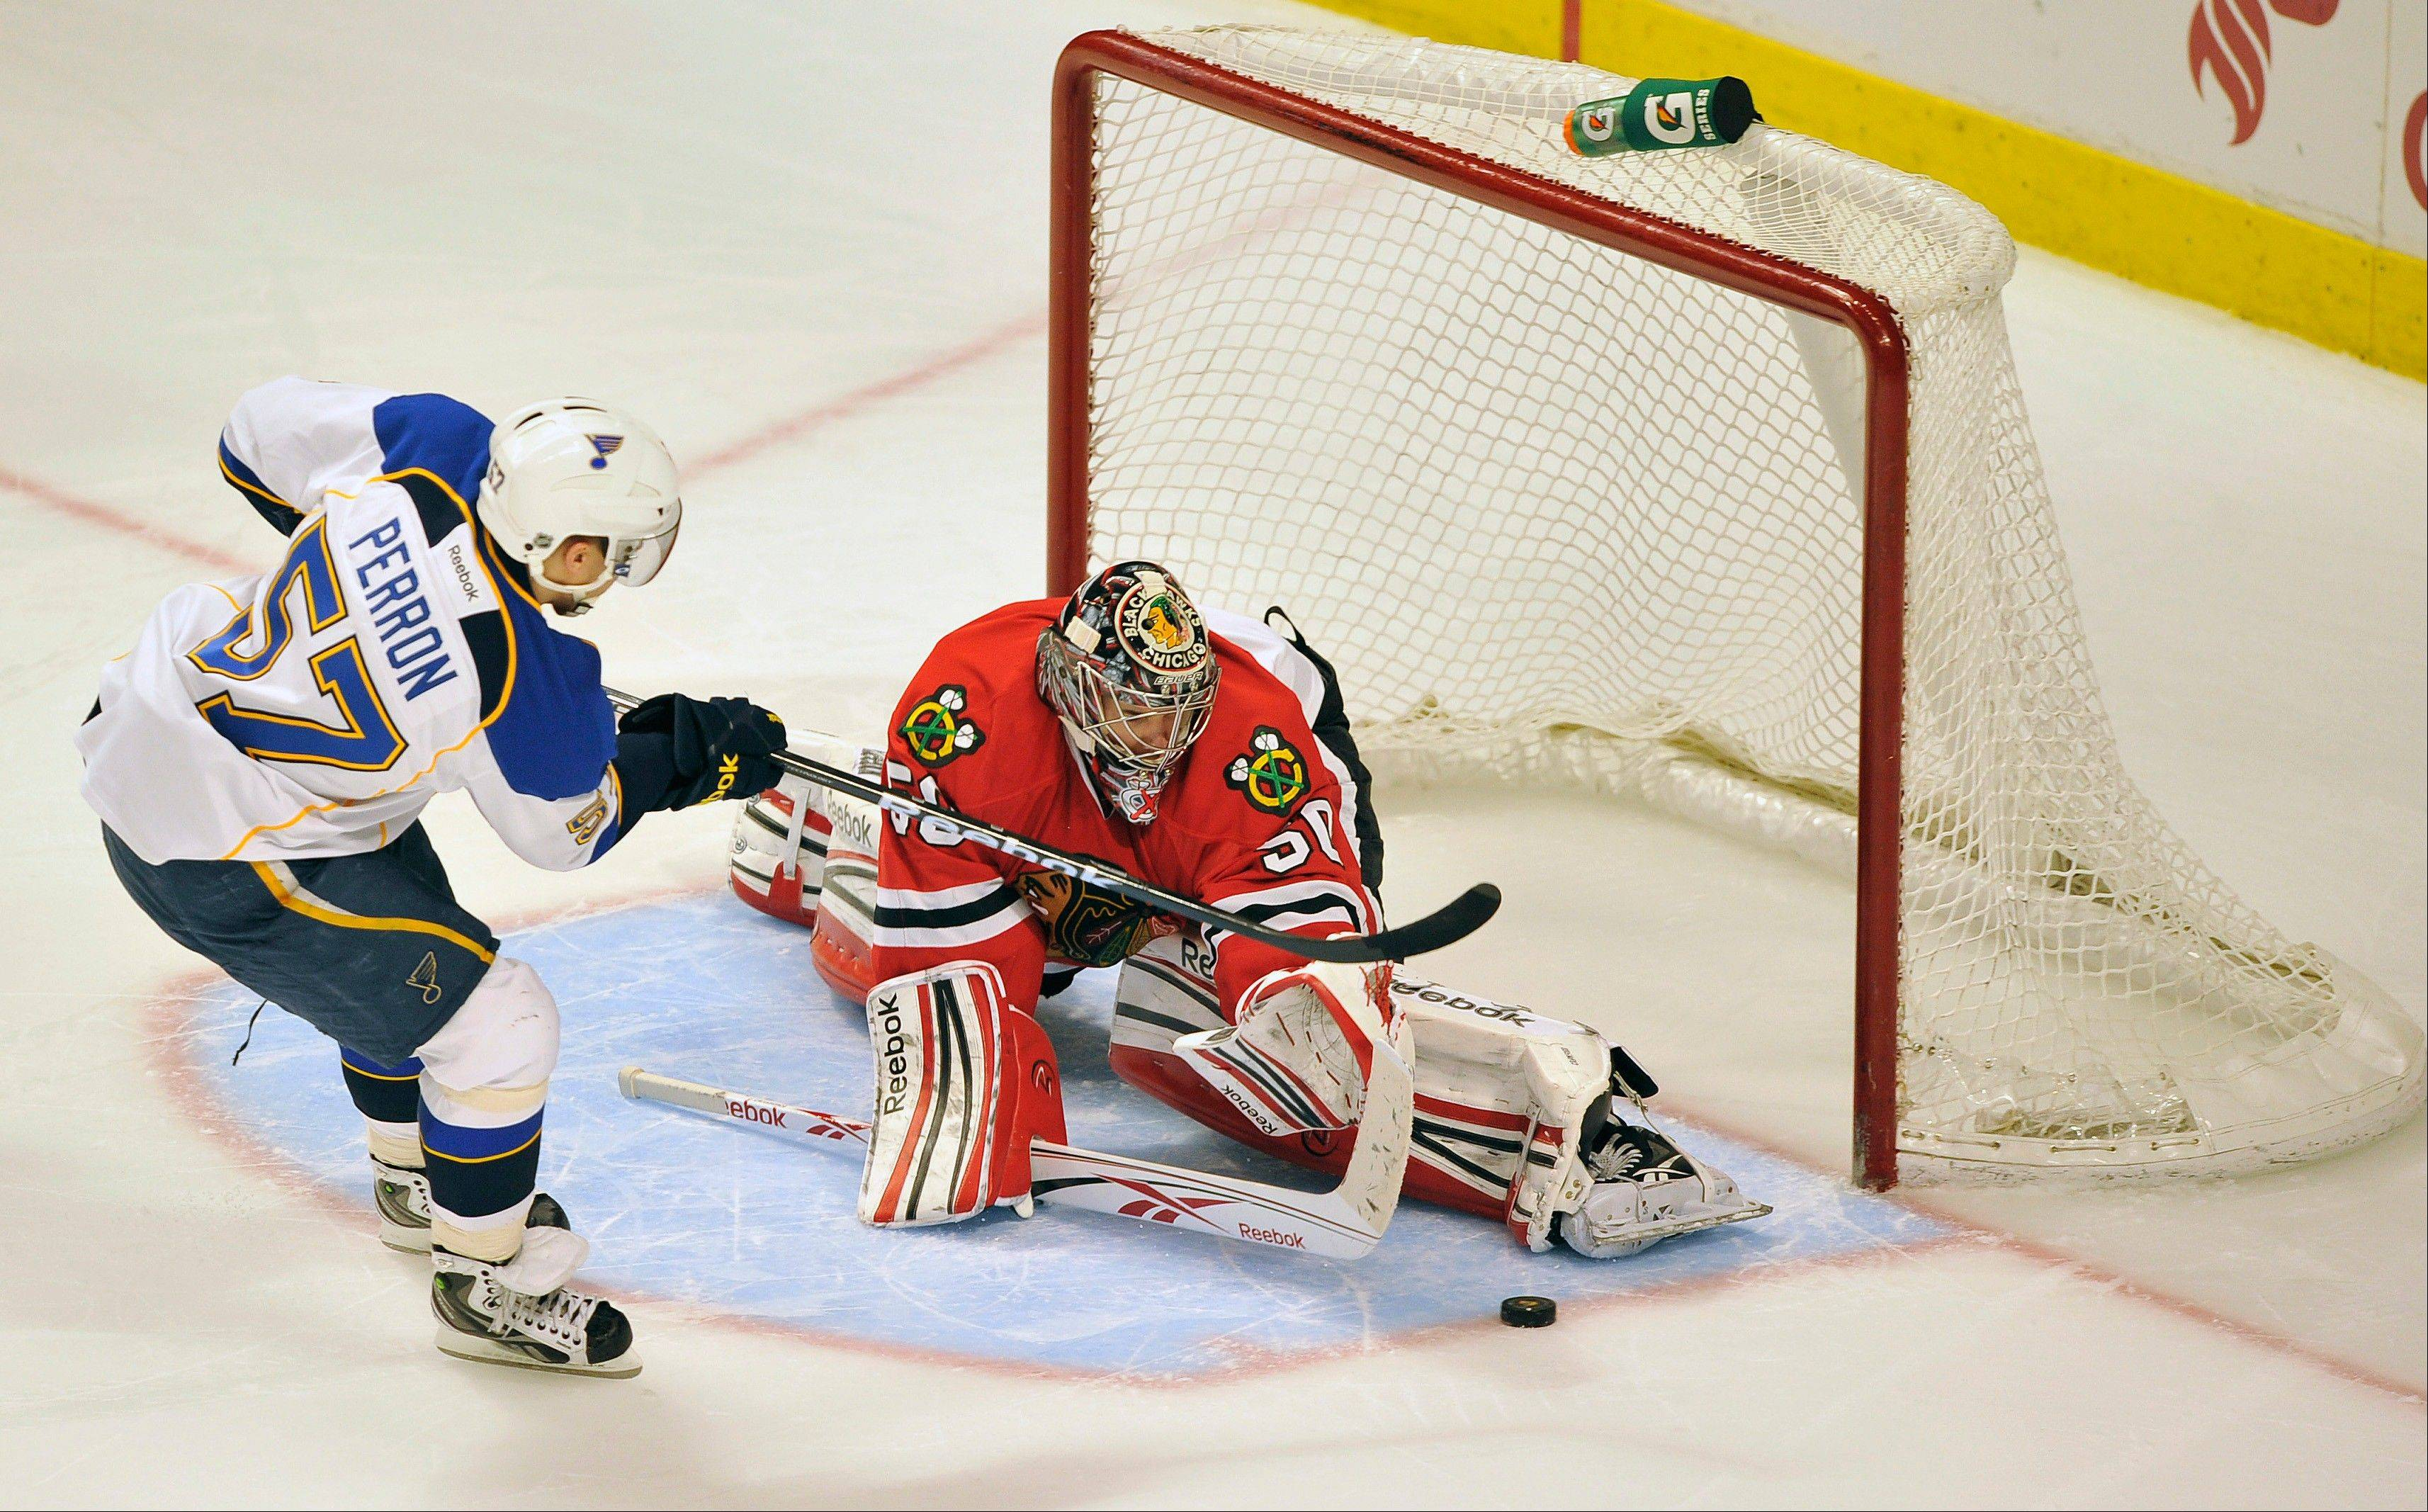 Blackhawks goaltender Corey Crawford will get another start in the net when the Hawks play at Dallas on Friday night.